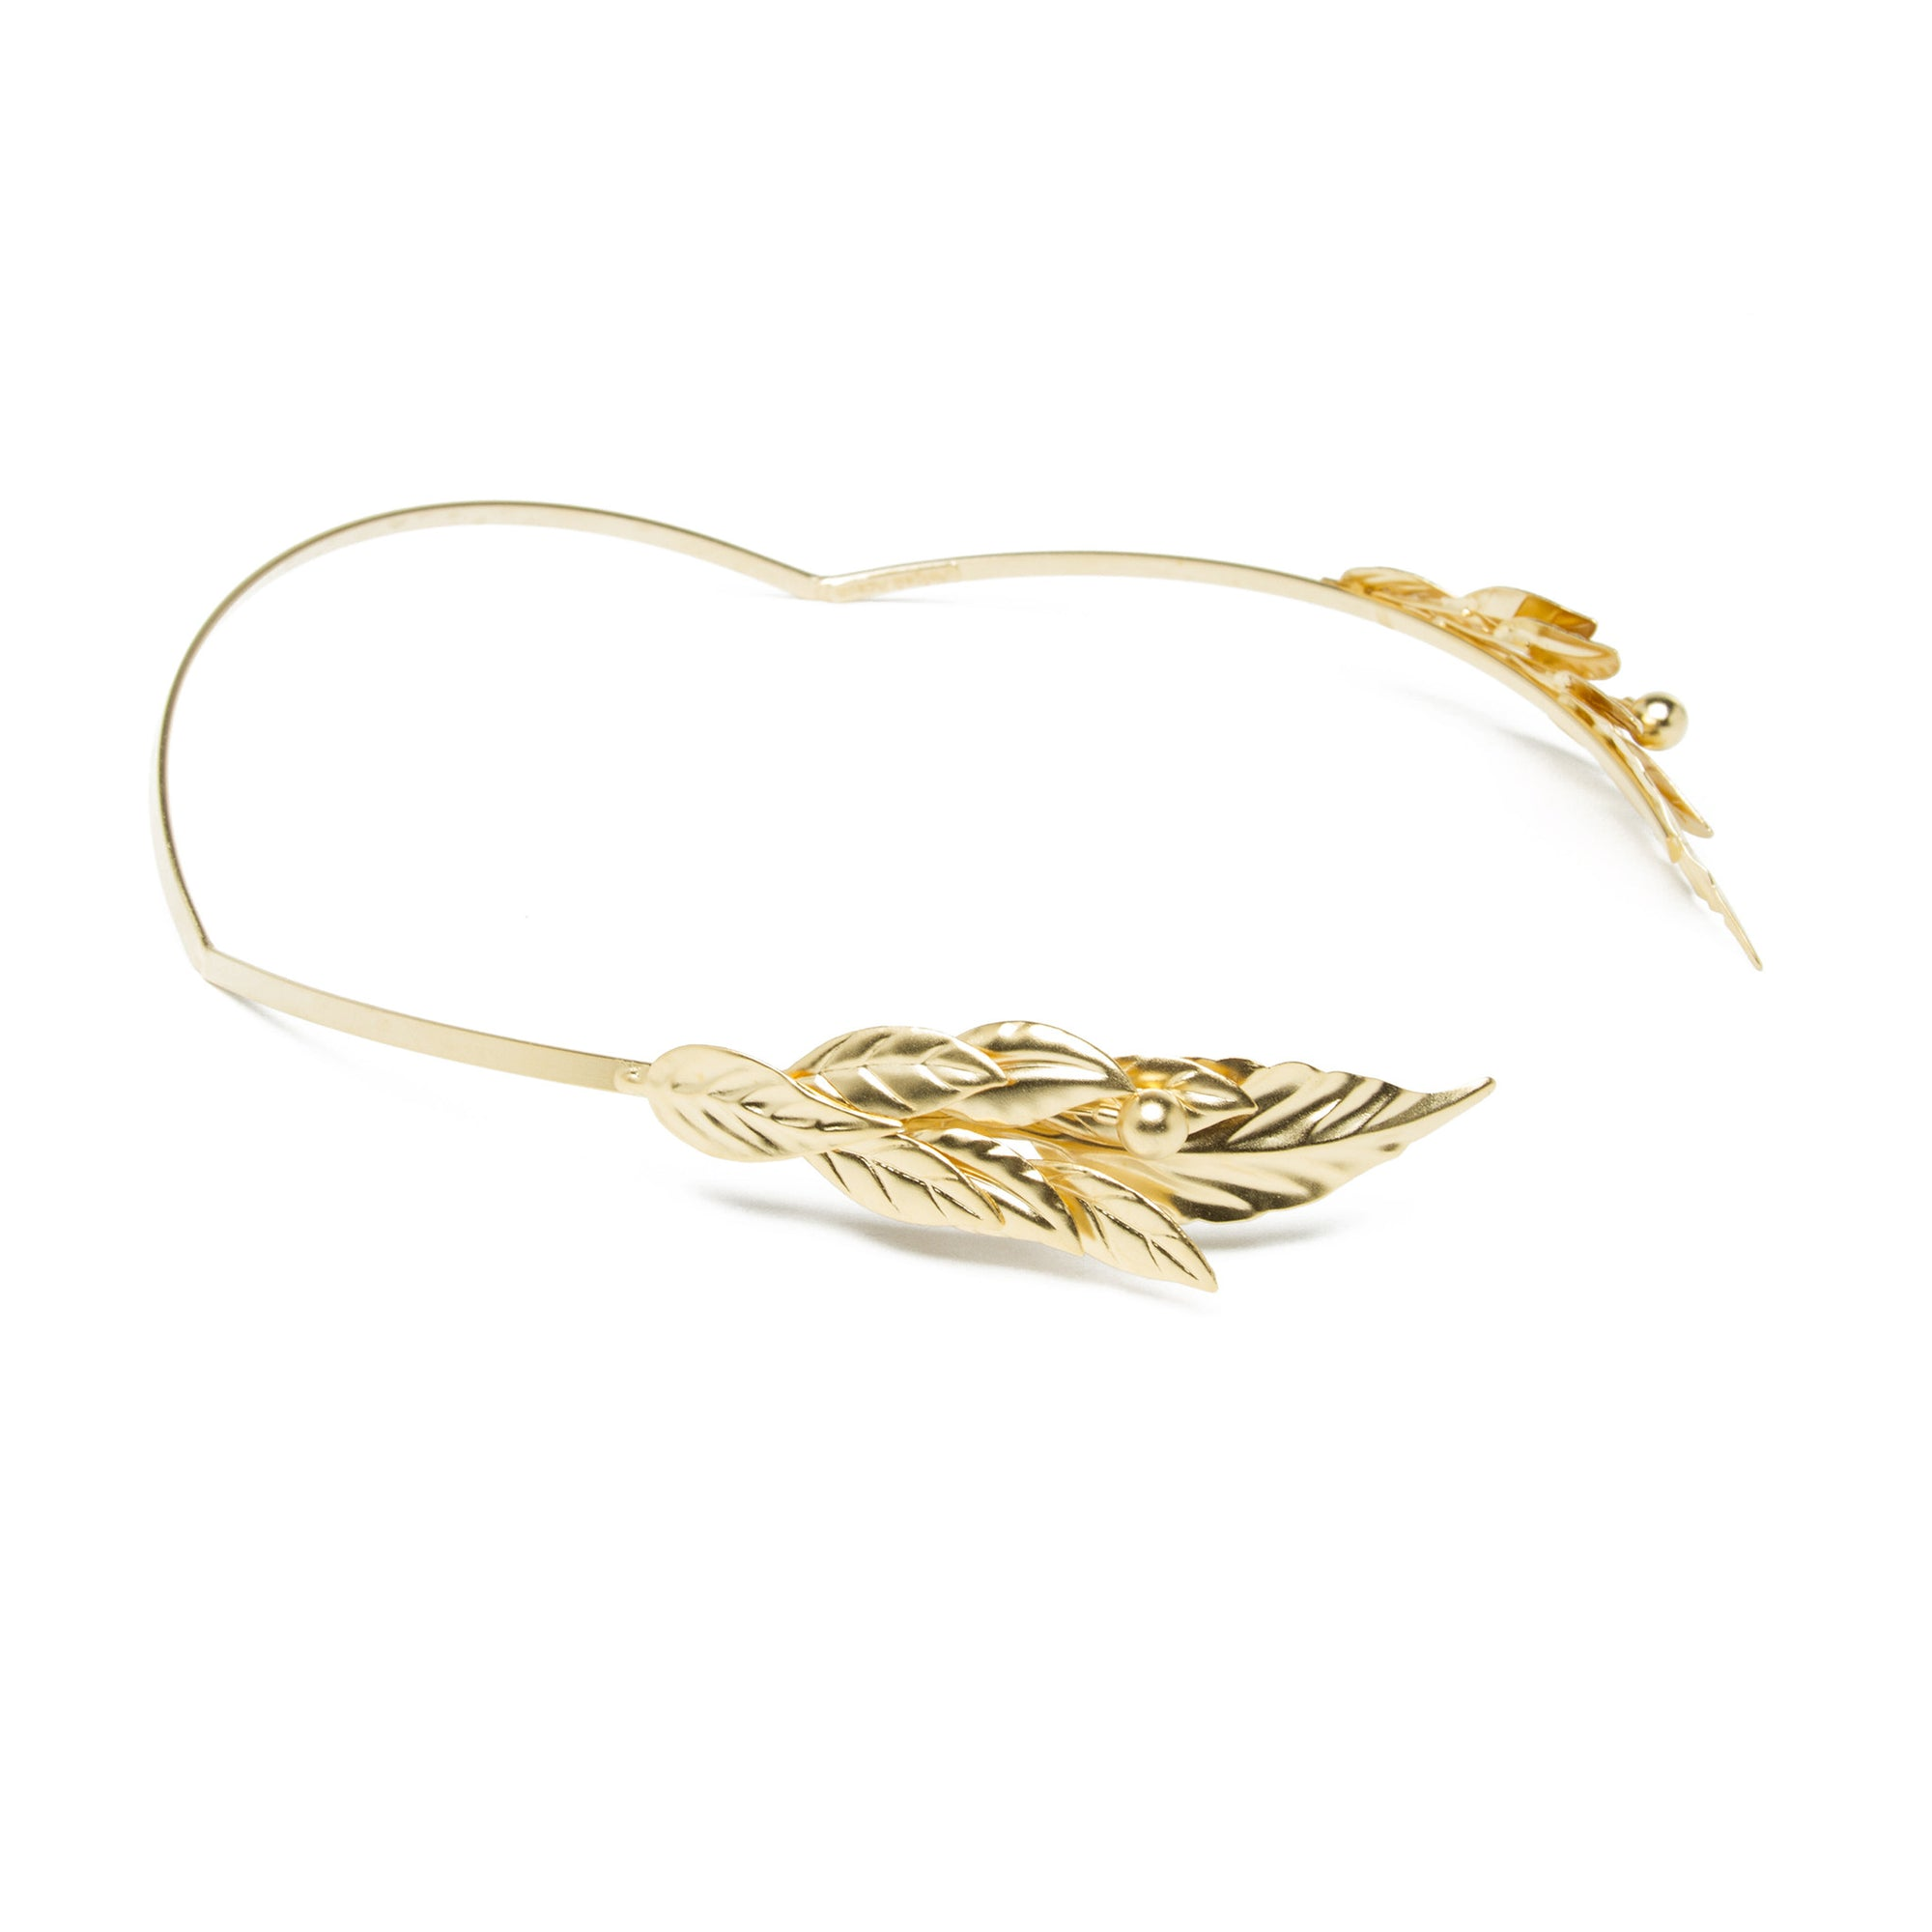 Laurel Wreath - Gold Plated